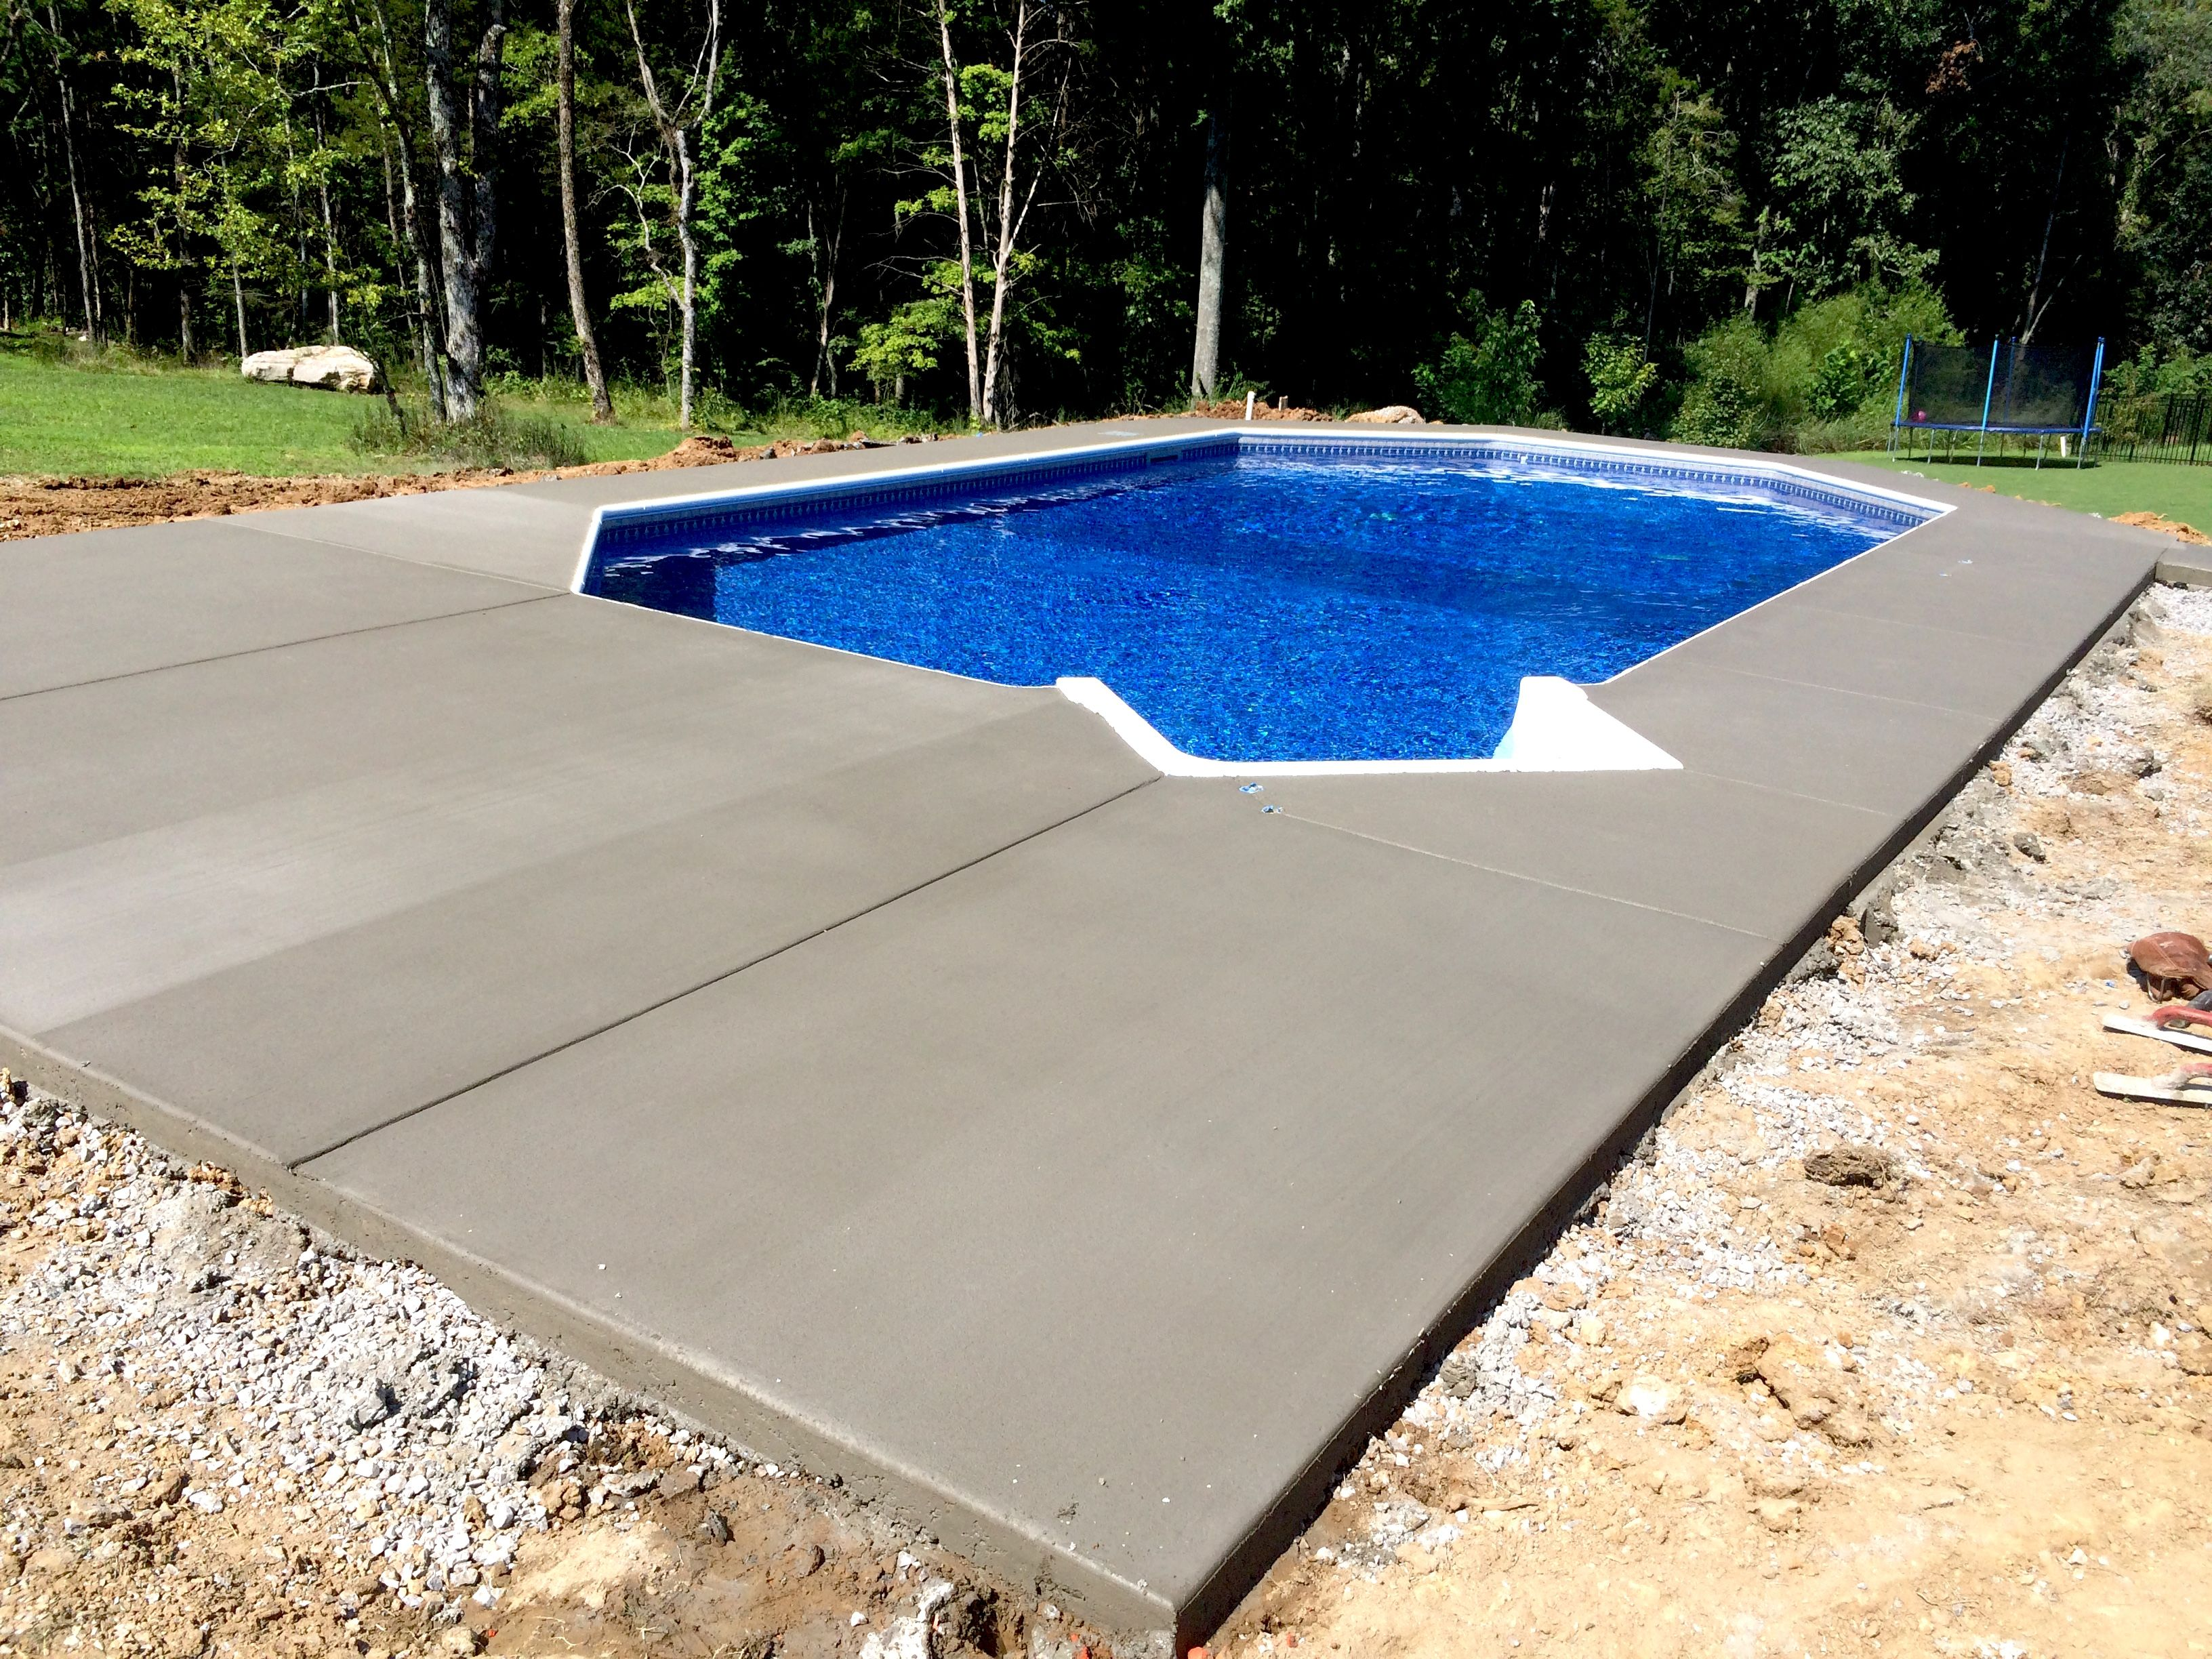 Pool And Spa Depot 17 X 31 Steel Wall Grecian Pool Blue Hampton Liner Pattern Aluminum Coping Broom Finished Concrete Decking Spa Pool Pool Steel Wall